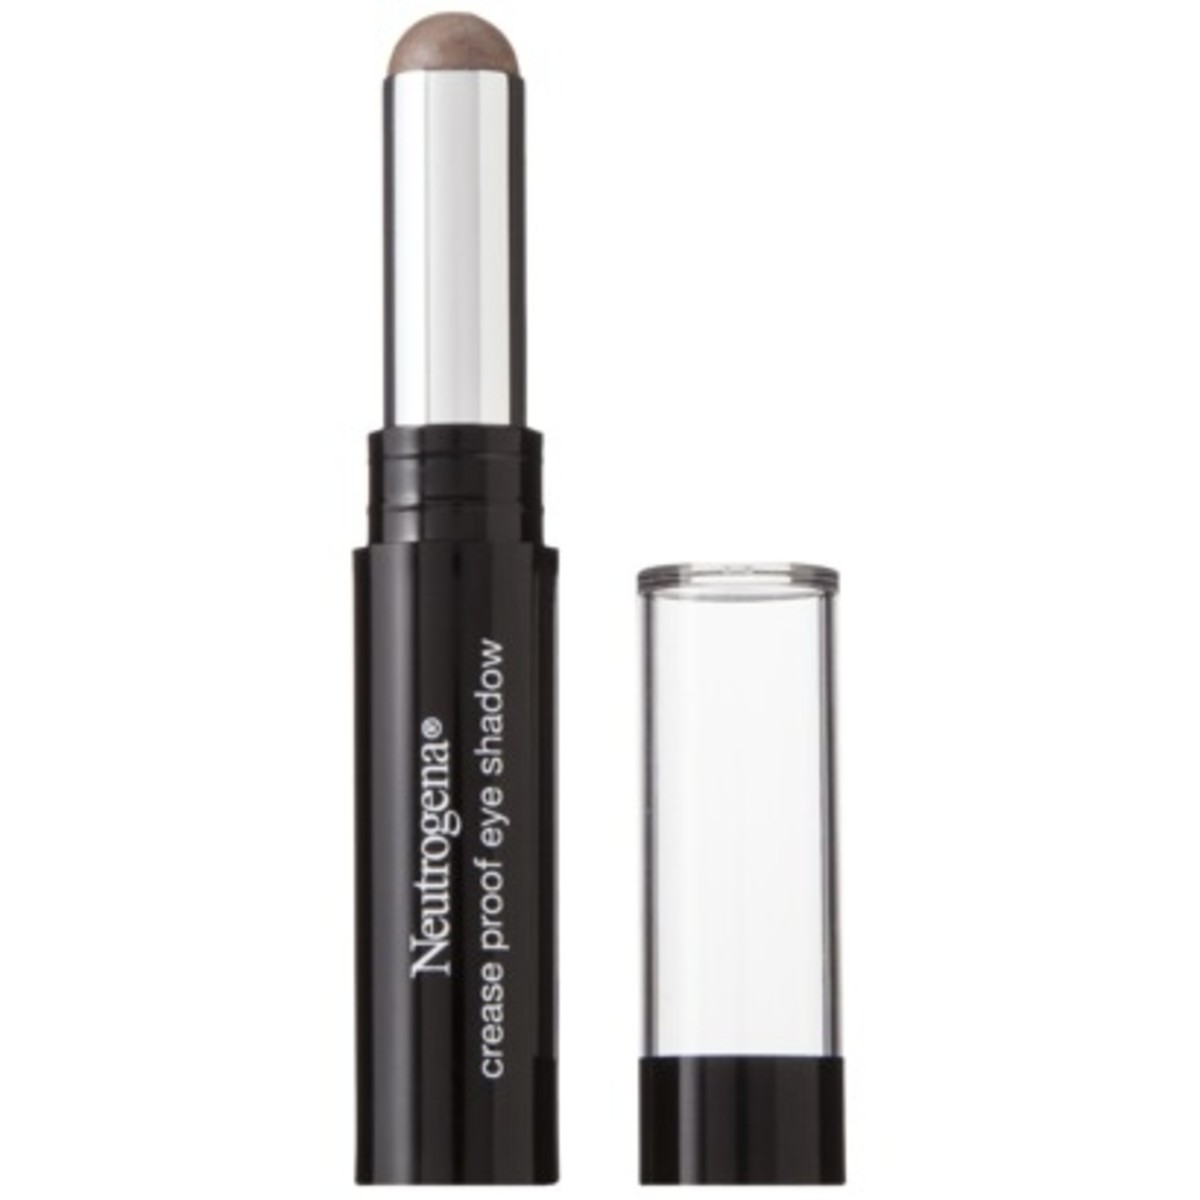 Neutrogena Crease Proof Eye Shadow in Lasting Taupe